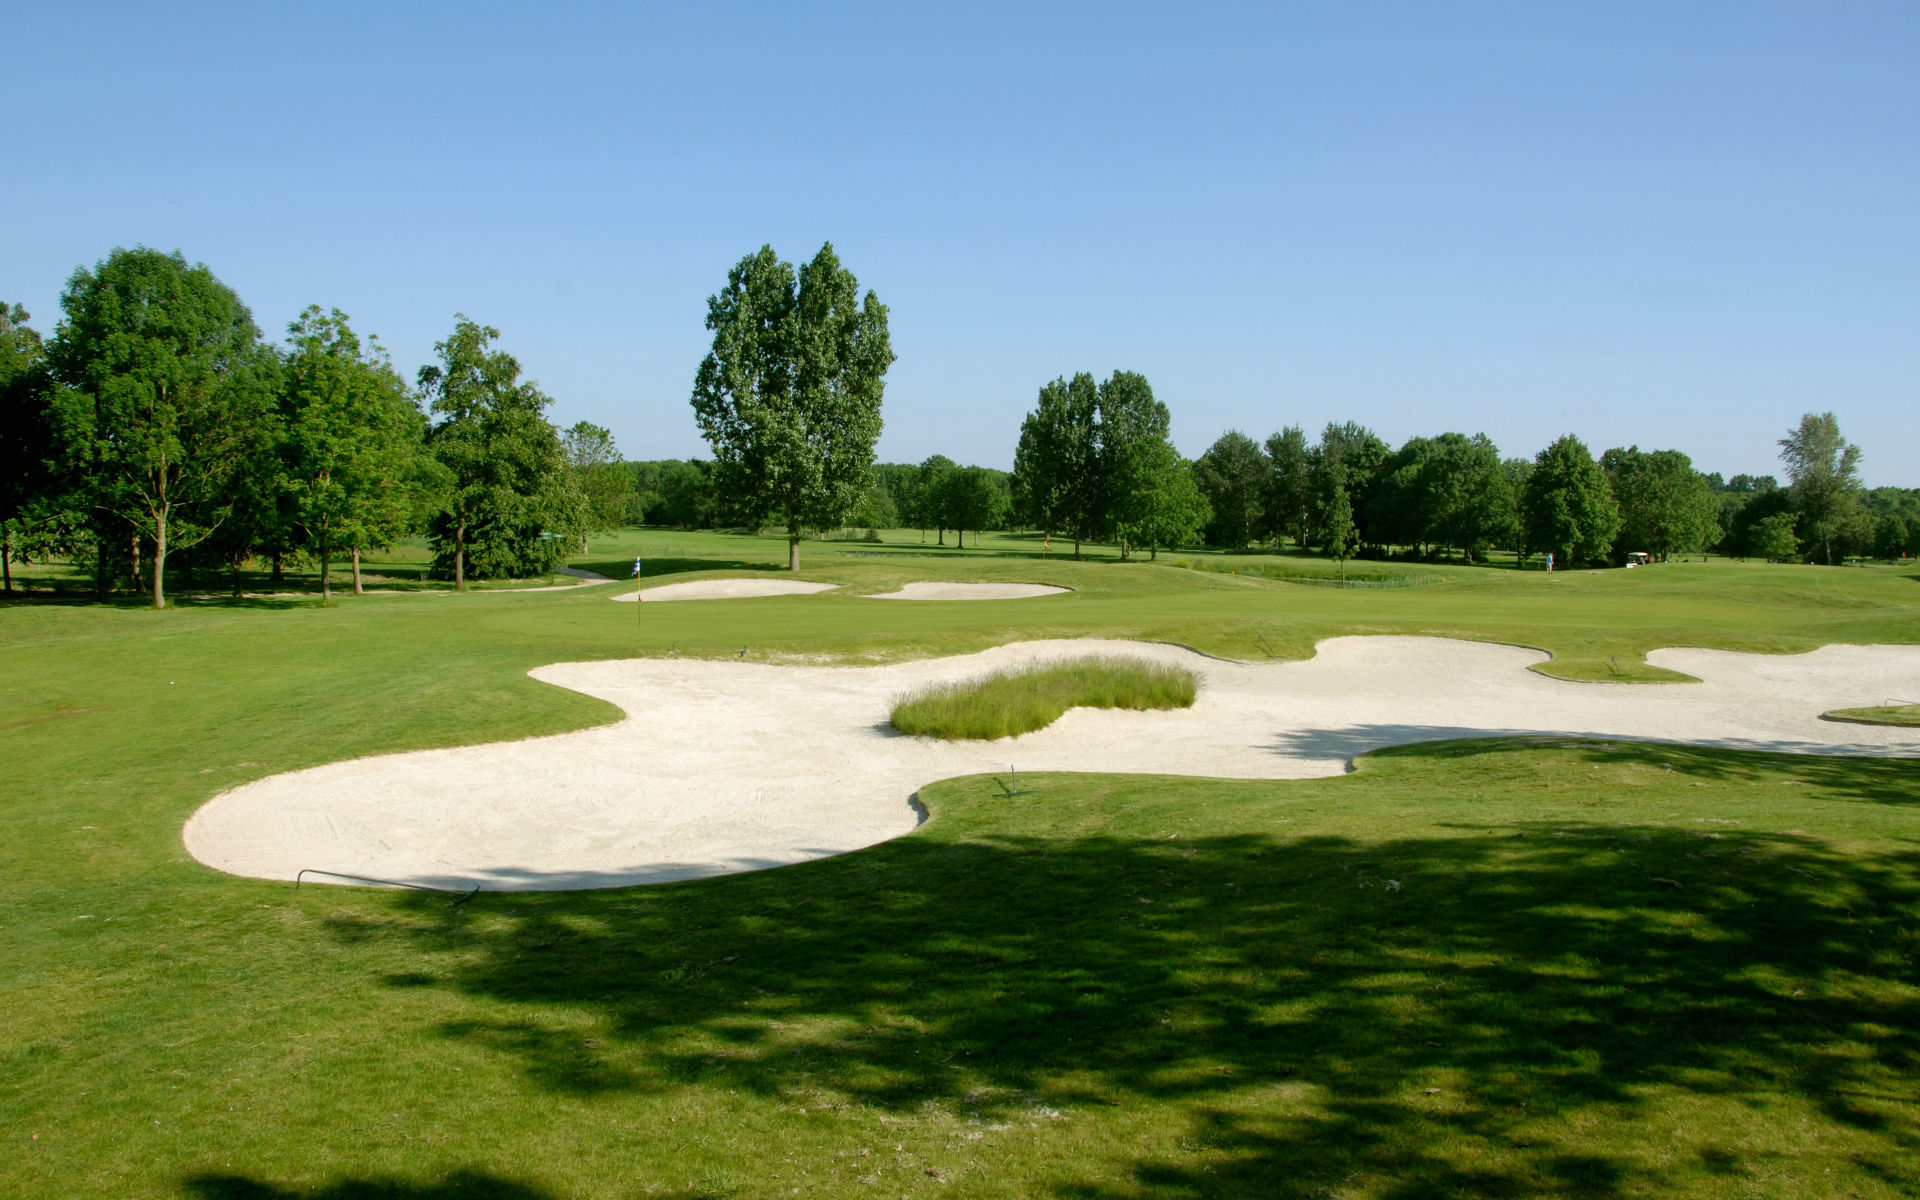 Almeerderhout golf club cover picture